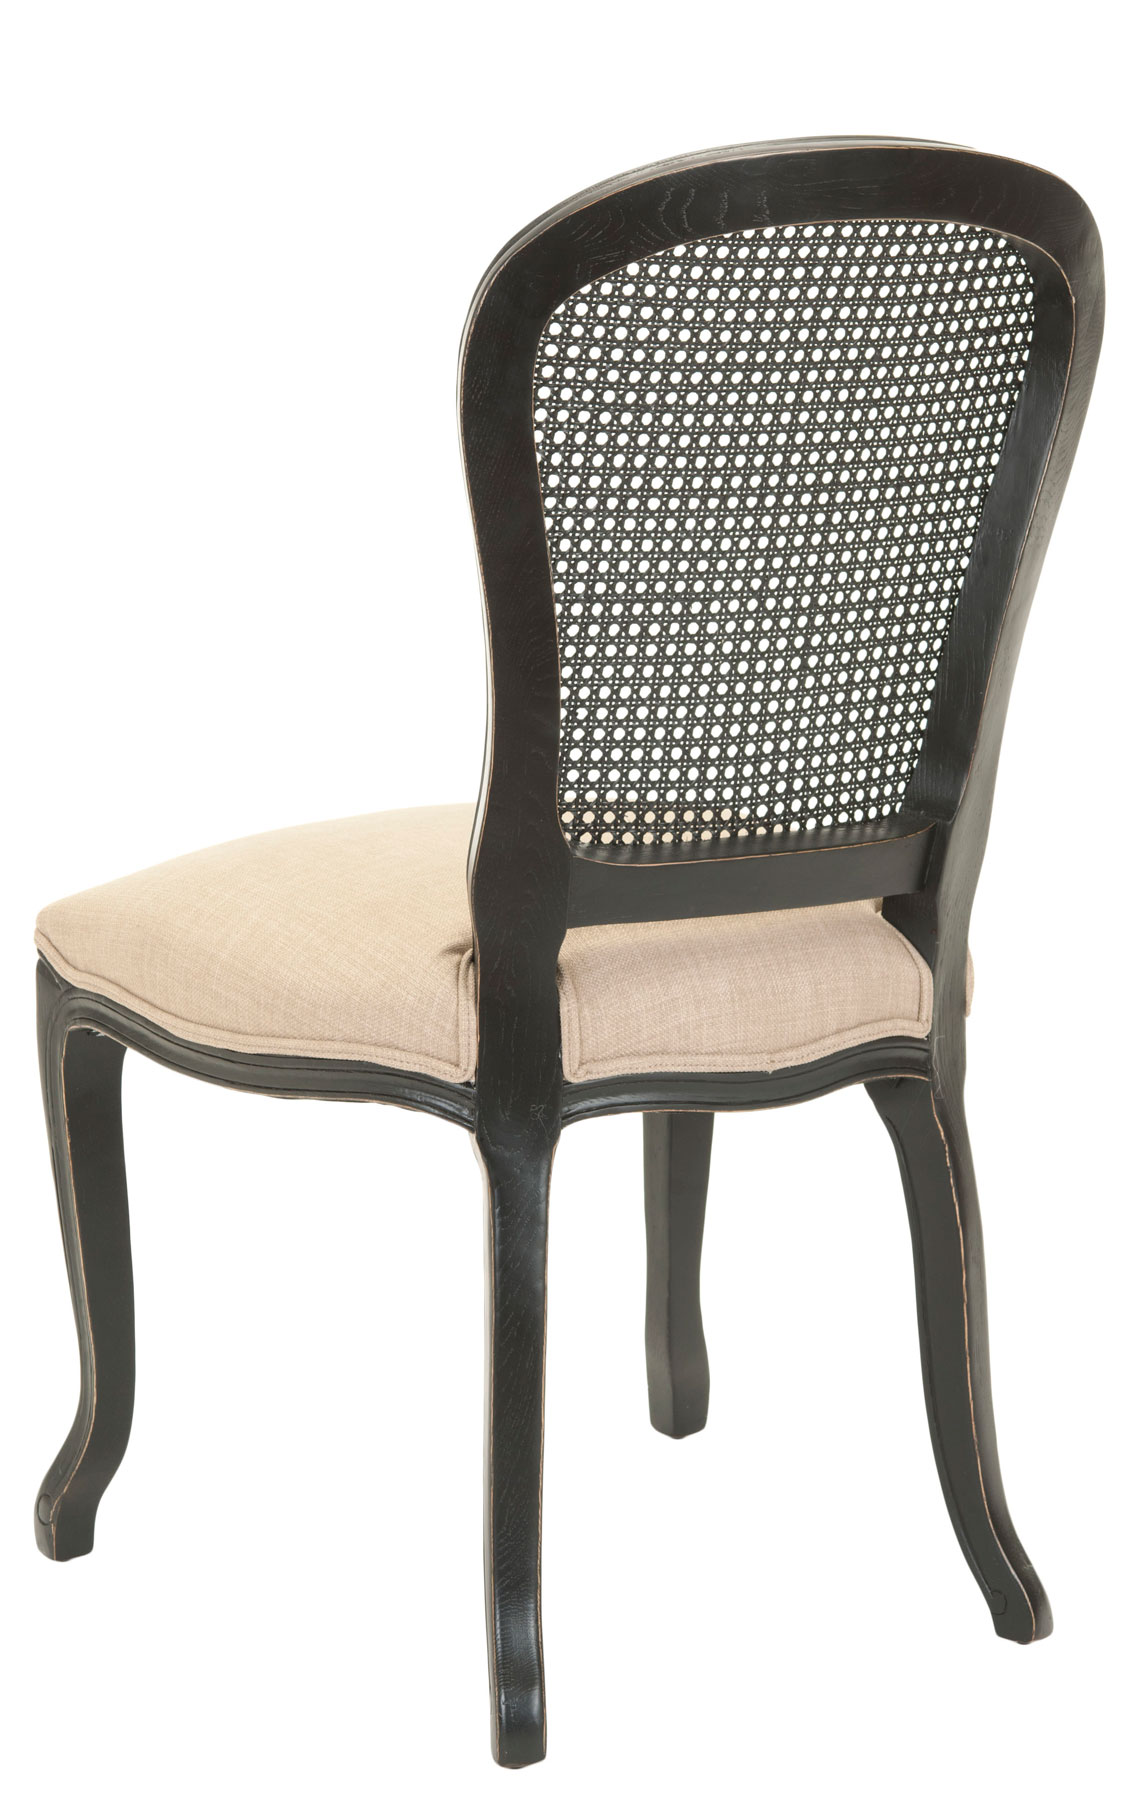 MCR4541B set2 Dining Chairs Furniture by Safavieh